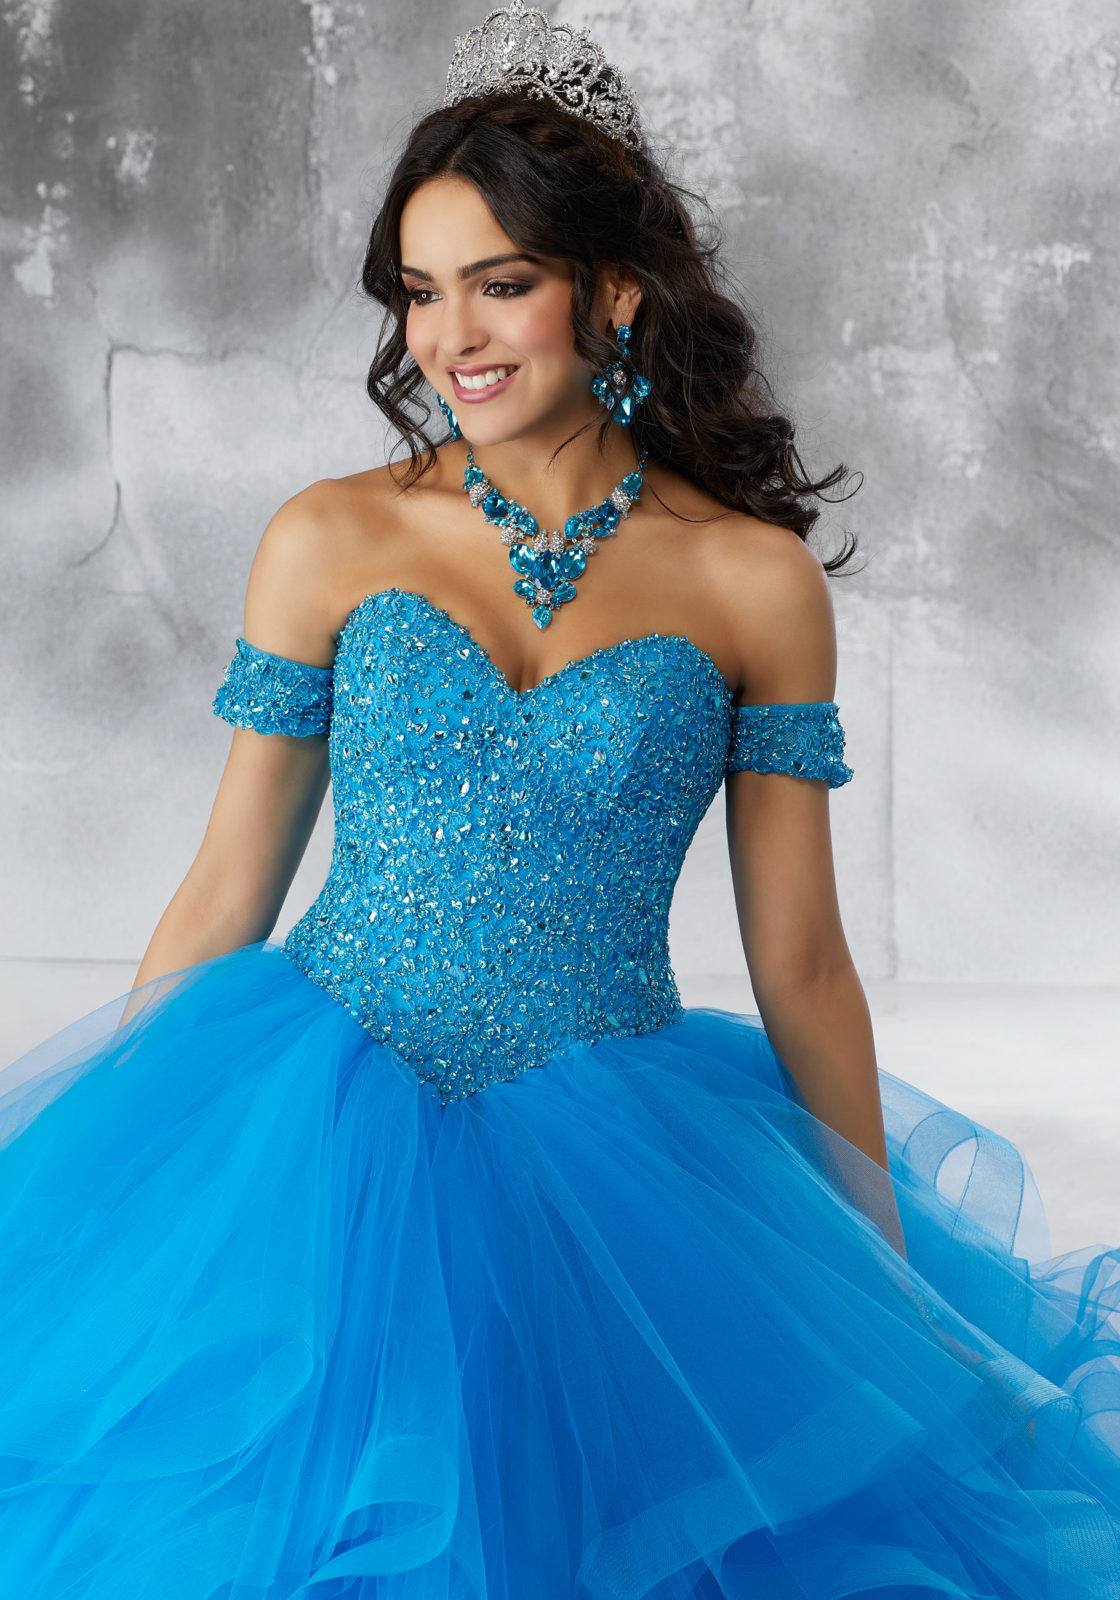 34510921ddb Quinceanera Dresses Purple And Turquoise - Data Dynamic AG